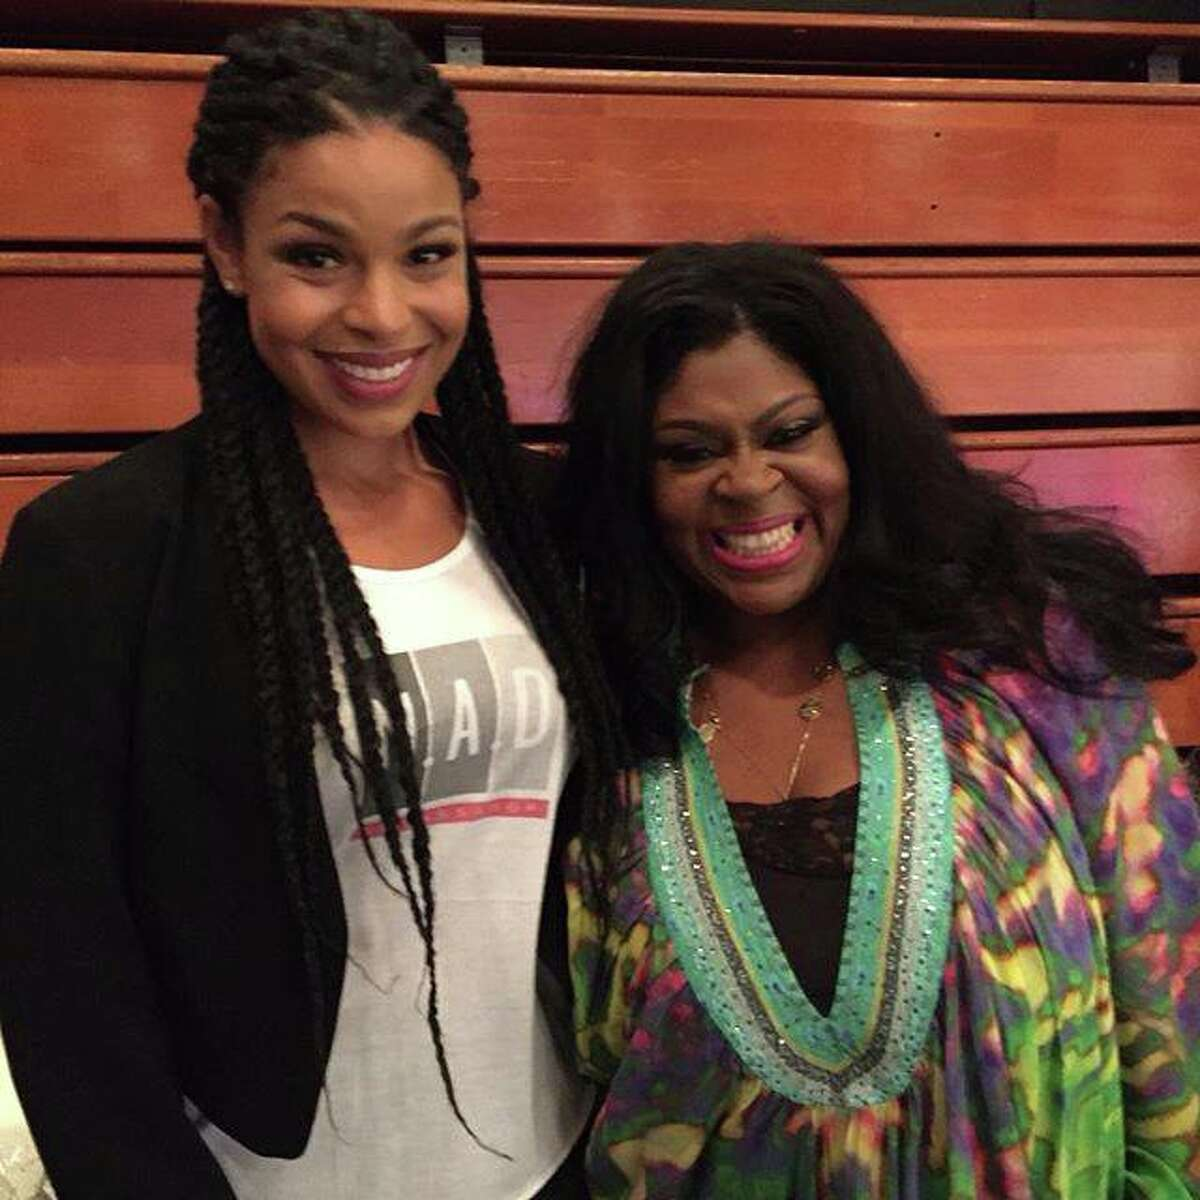 Houston native Kim Burrell has a new talk show filmed right here in the city. American Idol winner Jordin Sparks is one of her first guests.